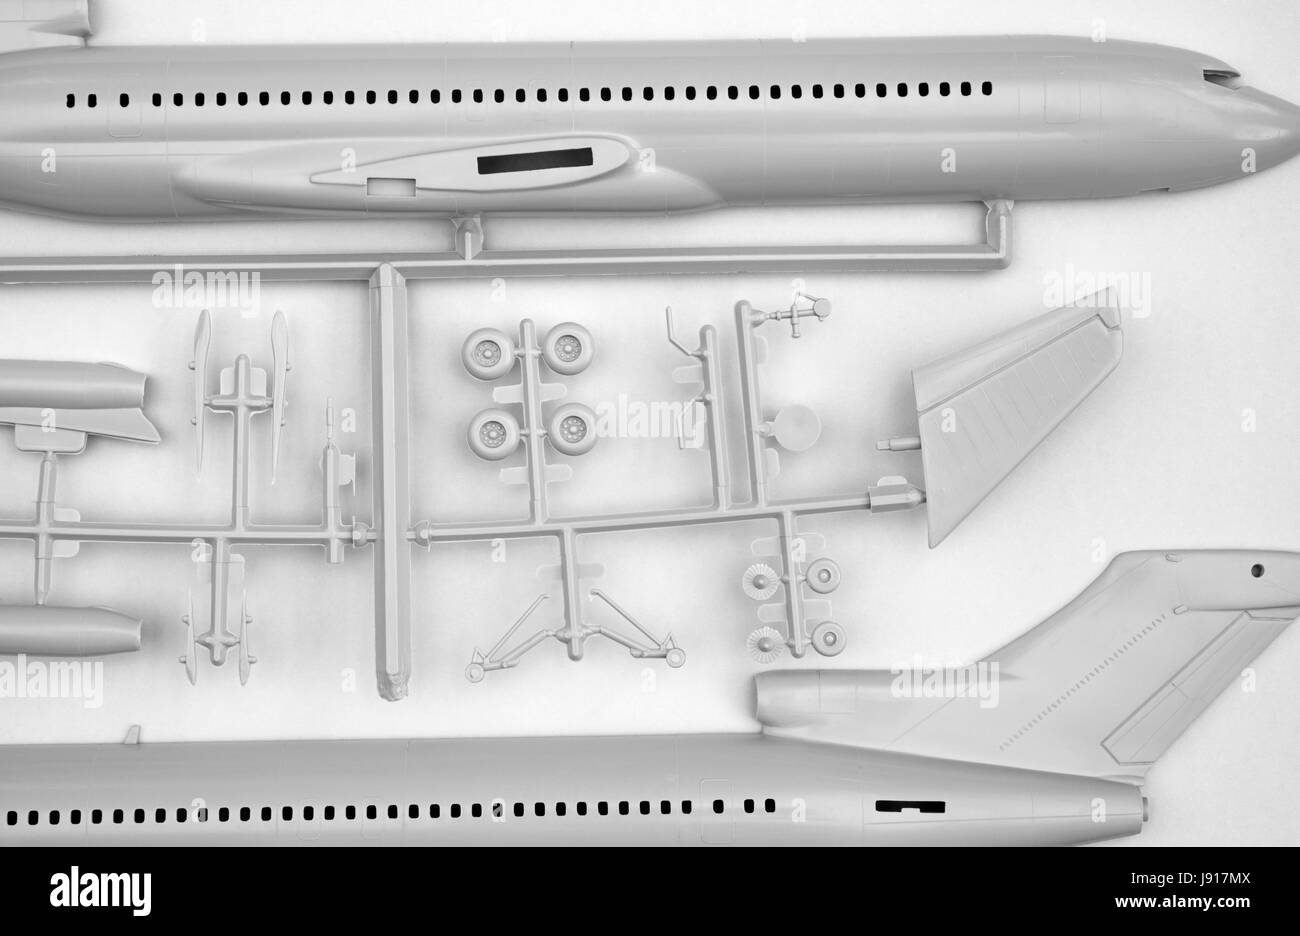 Airfix Boeing 727 airliner model kit - Stock Image